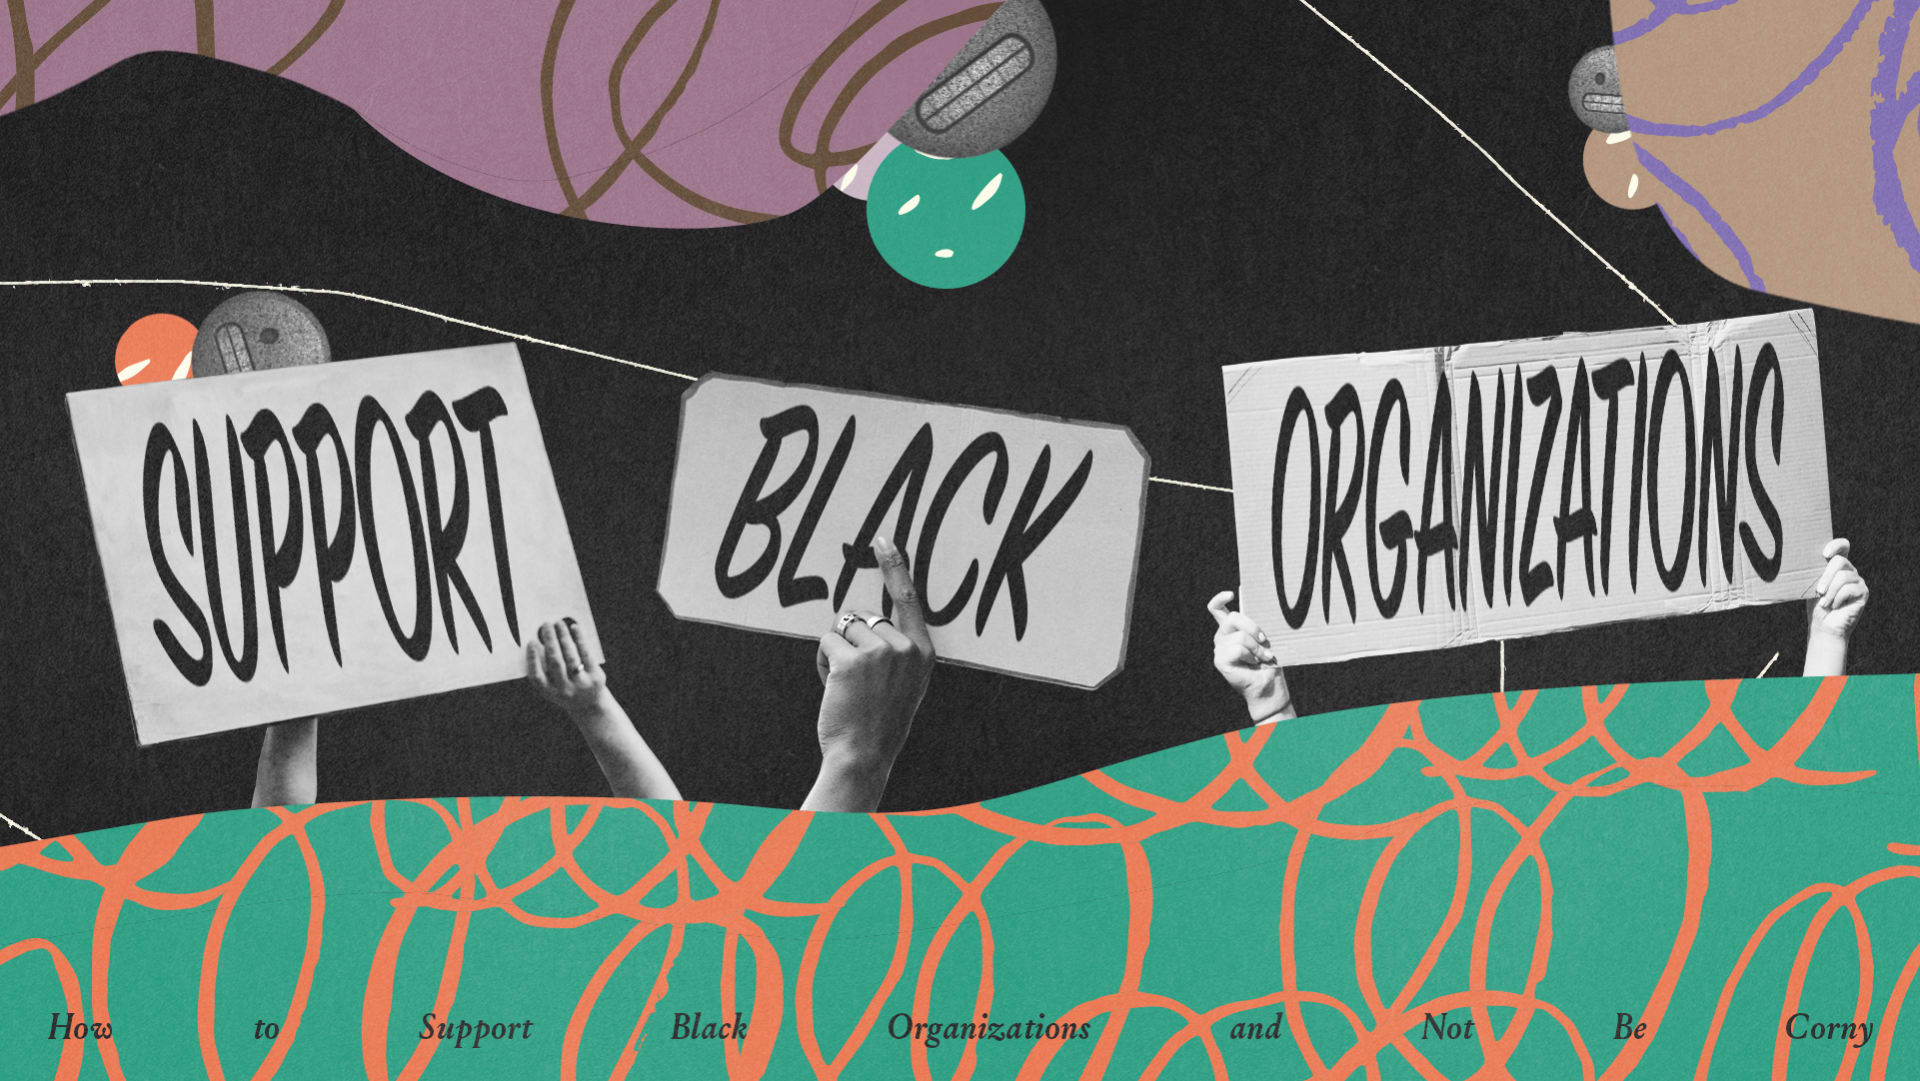 How to Support Black Lives Matter and Black Organizations